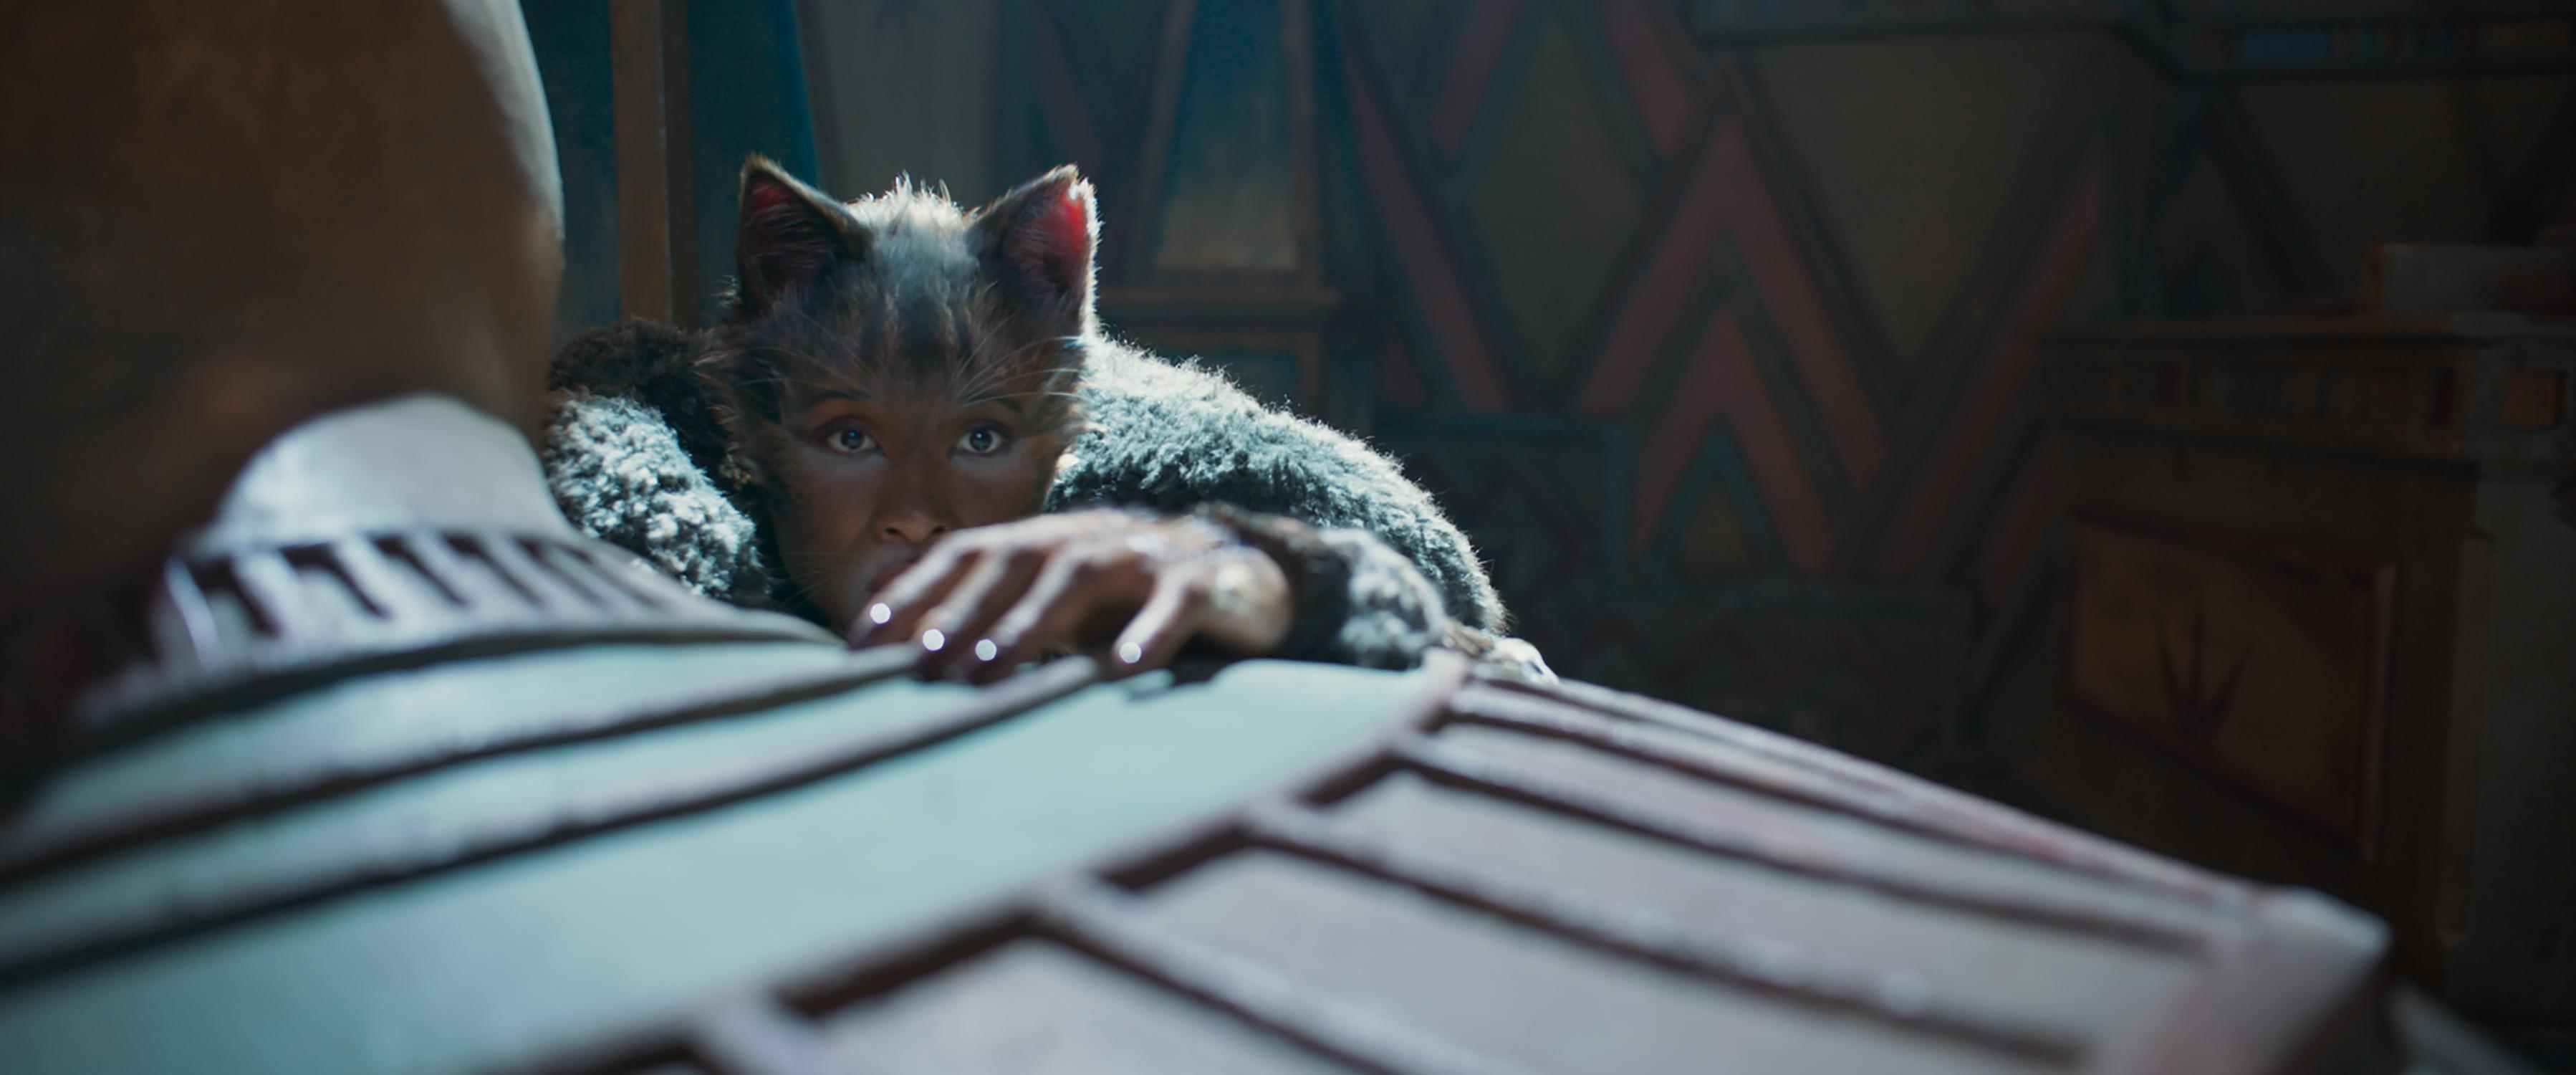 New 'Cats' trailer delights, terrifies the internet: 'The film will unite us in ways we can't yet know'